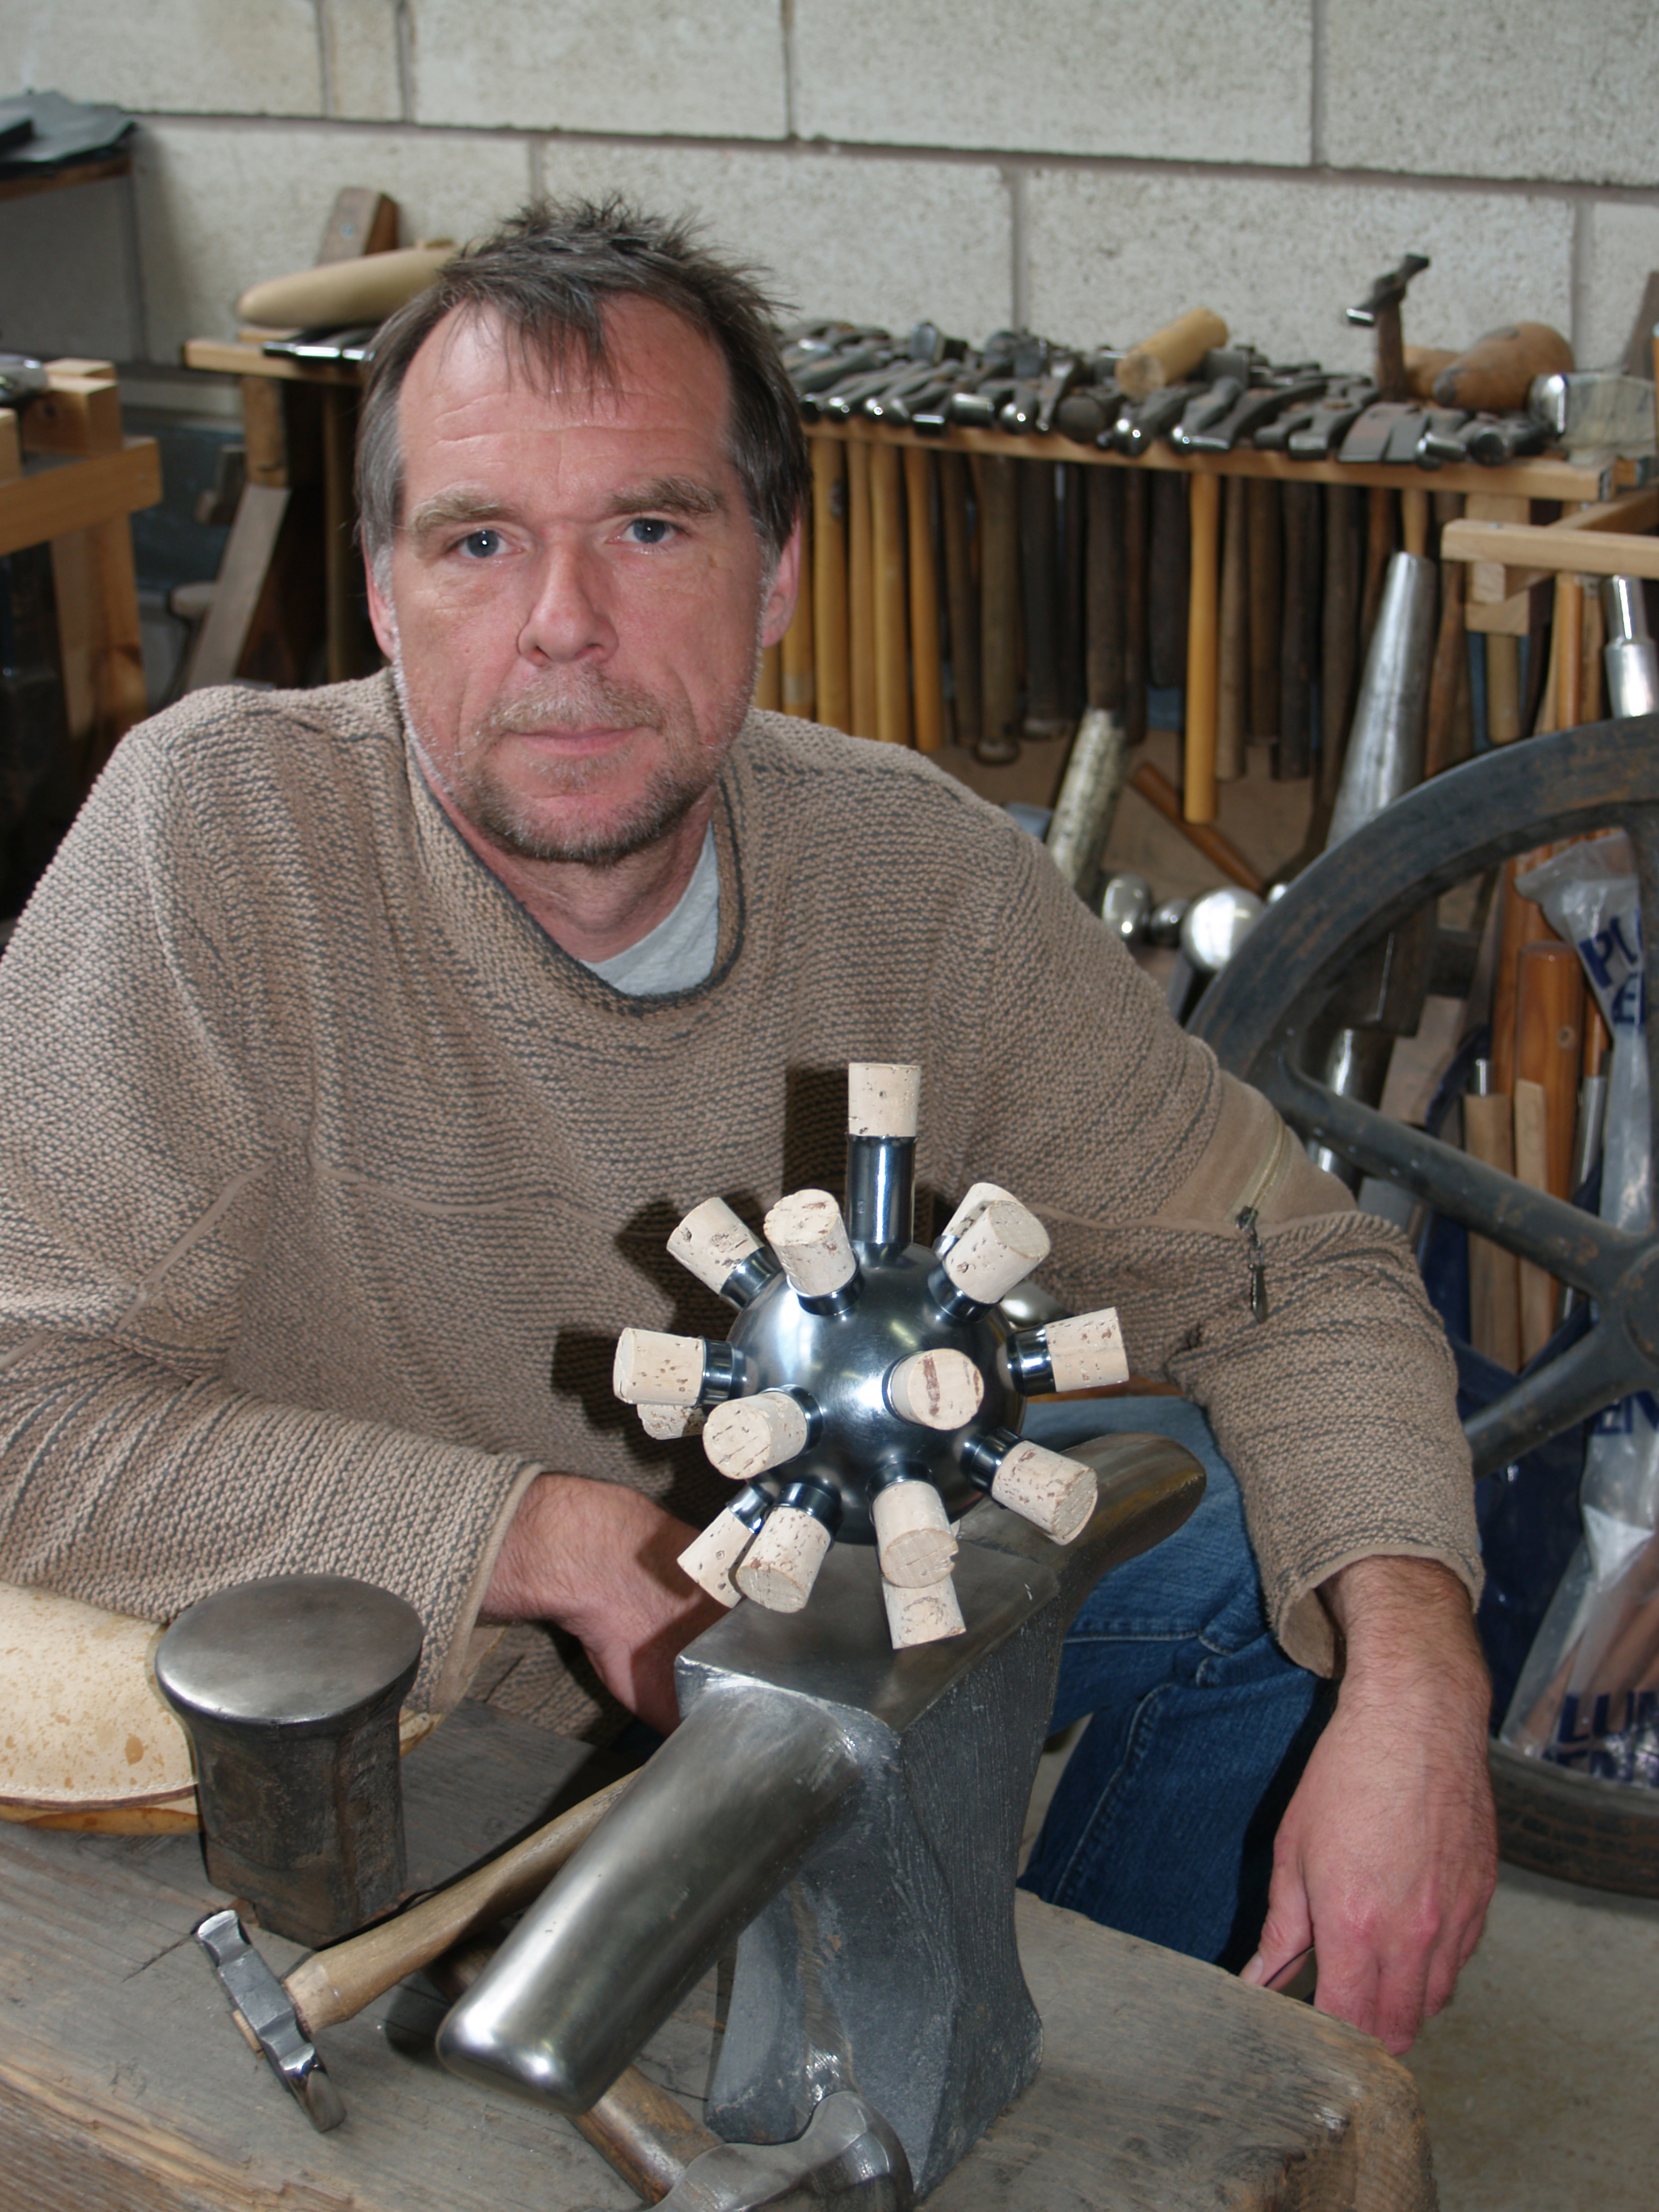 Chris Knight  - SHEFFIELD UK.Often working on the boundaries between art, craft and design, Chris Knight's pieces range from domestic, ecclesiastical and sporting silverware to architectural metalwork and public art.Having spent over 35 years working with metals, Chris has vast experience of fine metalwork in Silver, Bronze, Pewter and Steel, working on pieces from an intimate hand-scale to the monumental. The breath of this design and technical experience of working in metals informs both the work he makes within his own studio and that which he designs for production by manufacturers. Throughout his career Chris has embraced and generated opportunities to work creatively within a team. He has collaborated with silversmiths, product, interior and landscape designers, architects, artists, engineering companies, developers, town planners and city councils.Chris Knight is represented by Adrian Sassoon Adrian Sassoon